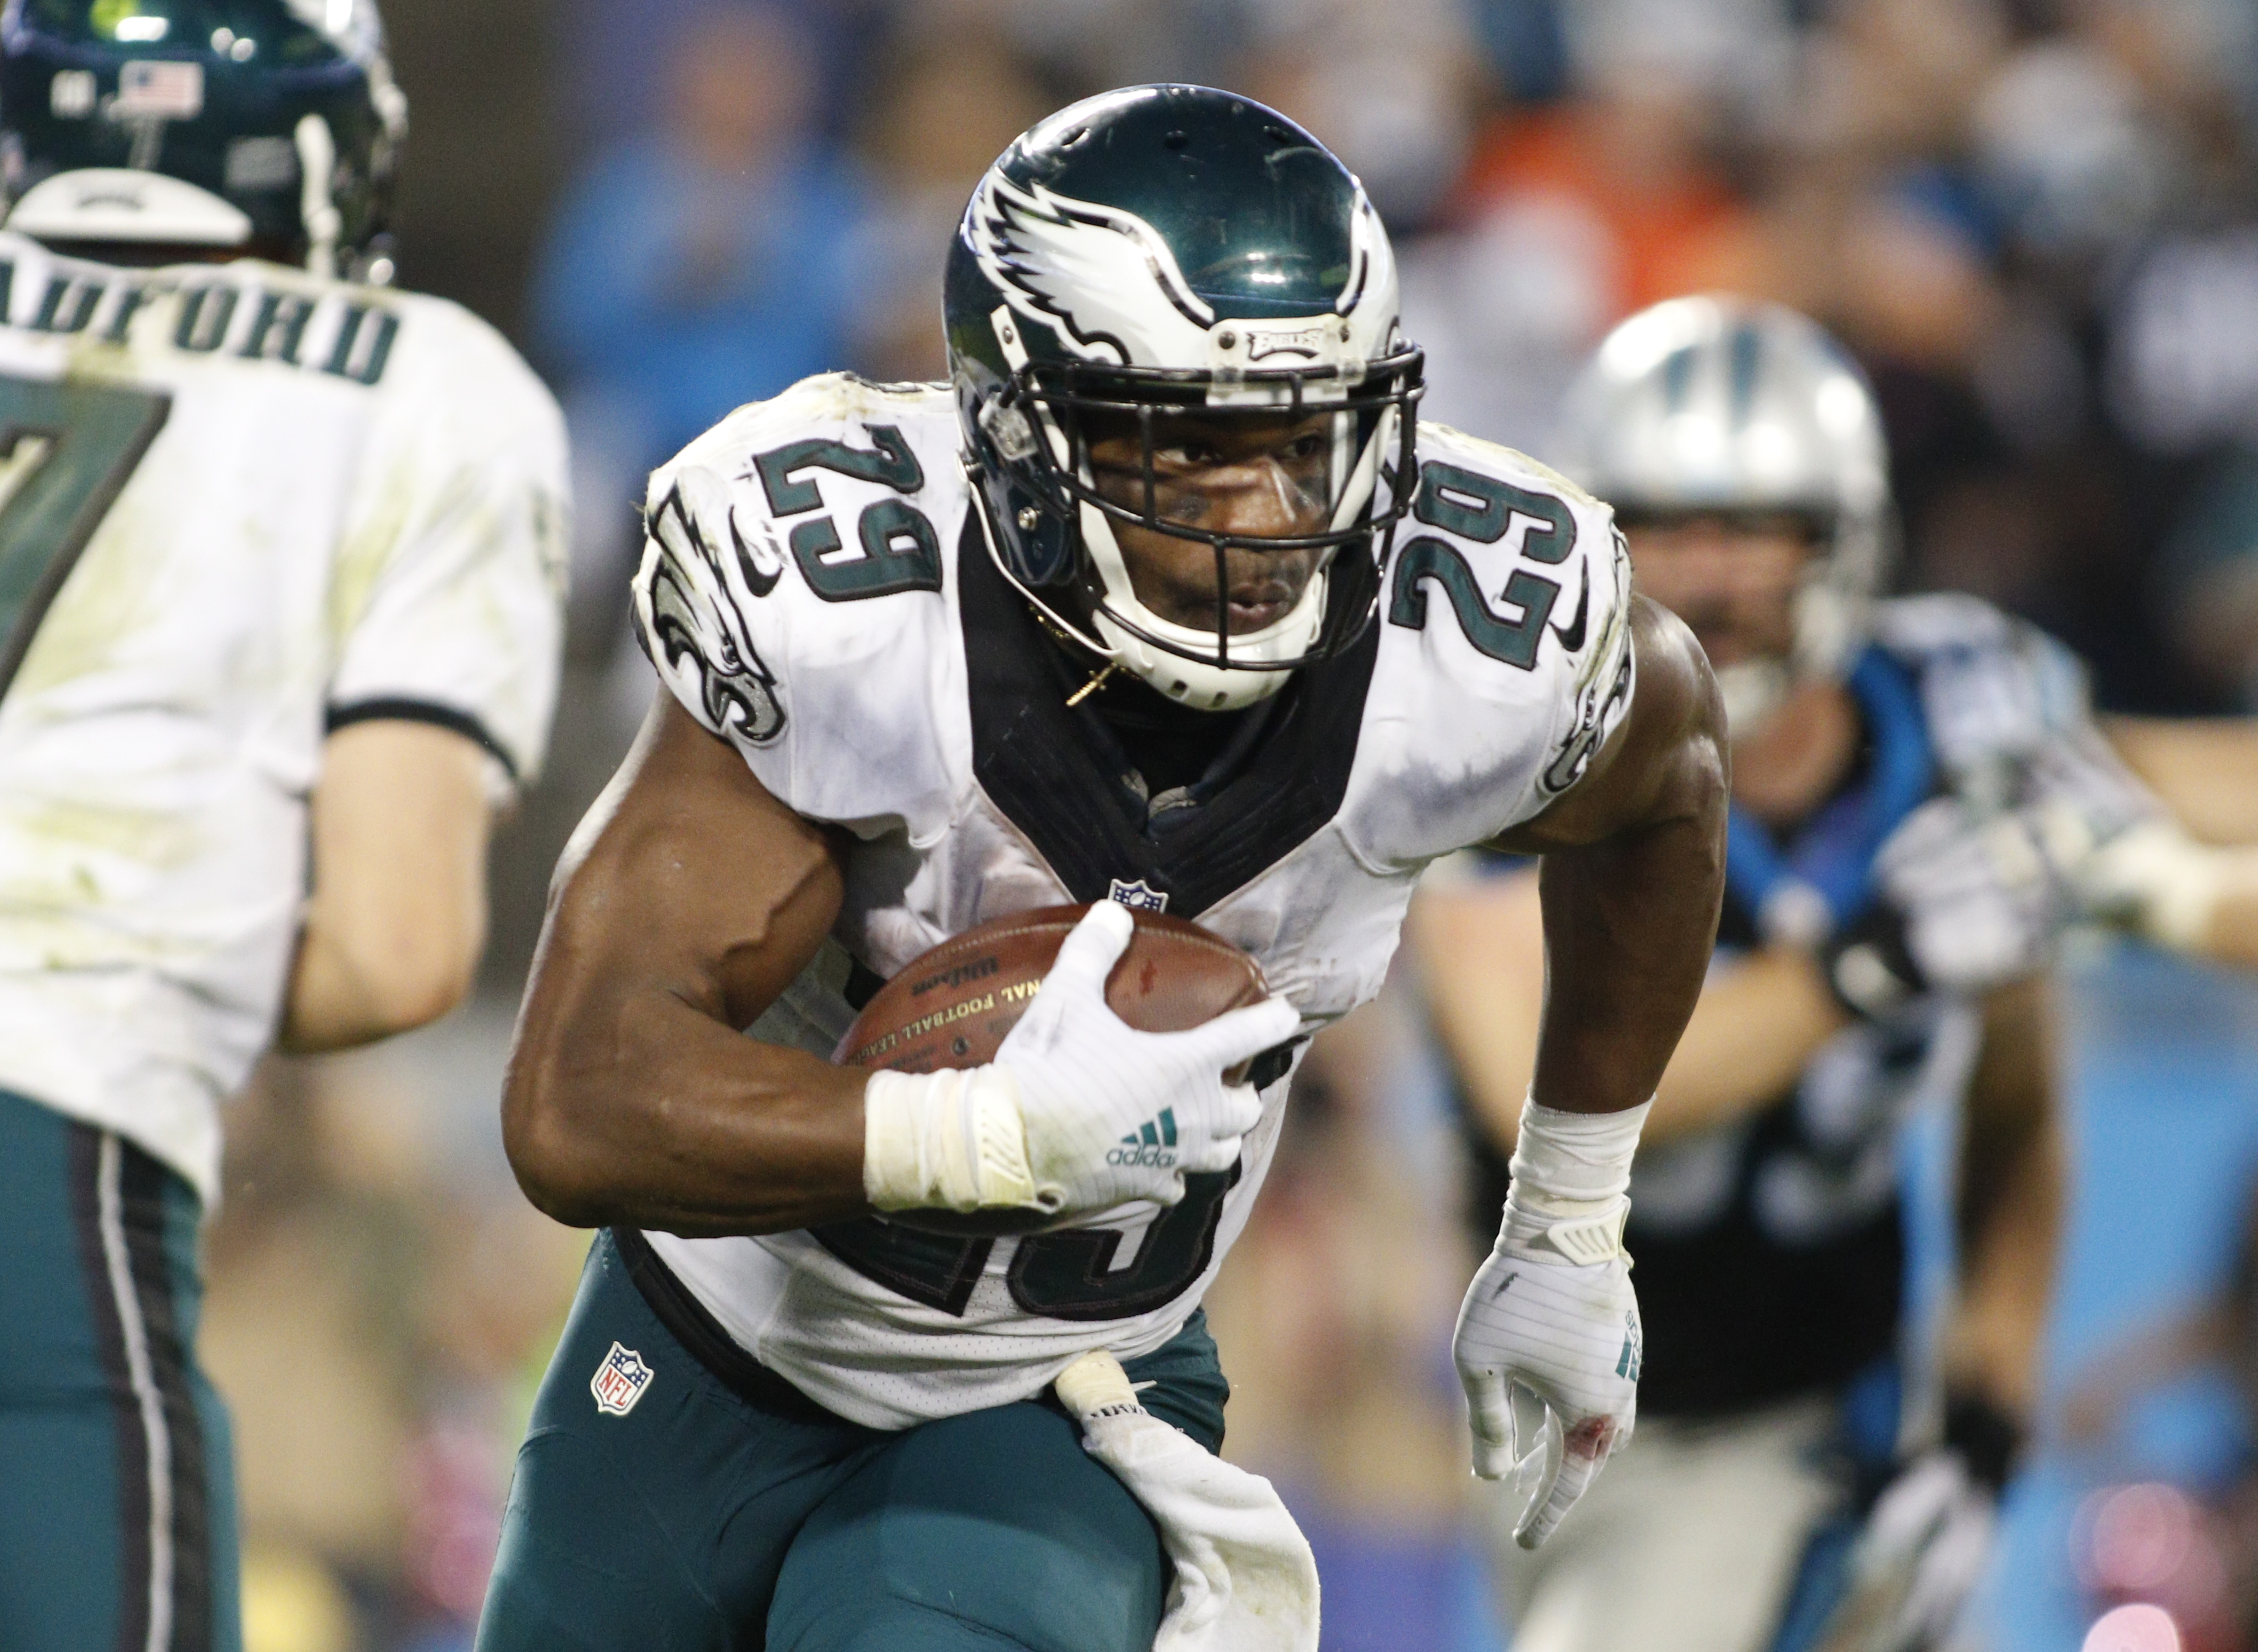 FILE - In this Oct. 25, 2015, file photo, Philadelphia Eagles' DeMarco Murray (29) runs against the Carolina Panthers in the second half of an NFL football game in Charlotte, N.C. The Titans are expected to finalize their trade for running back DeMarco Mu